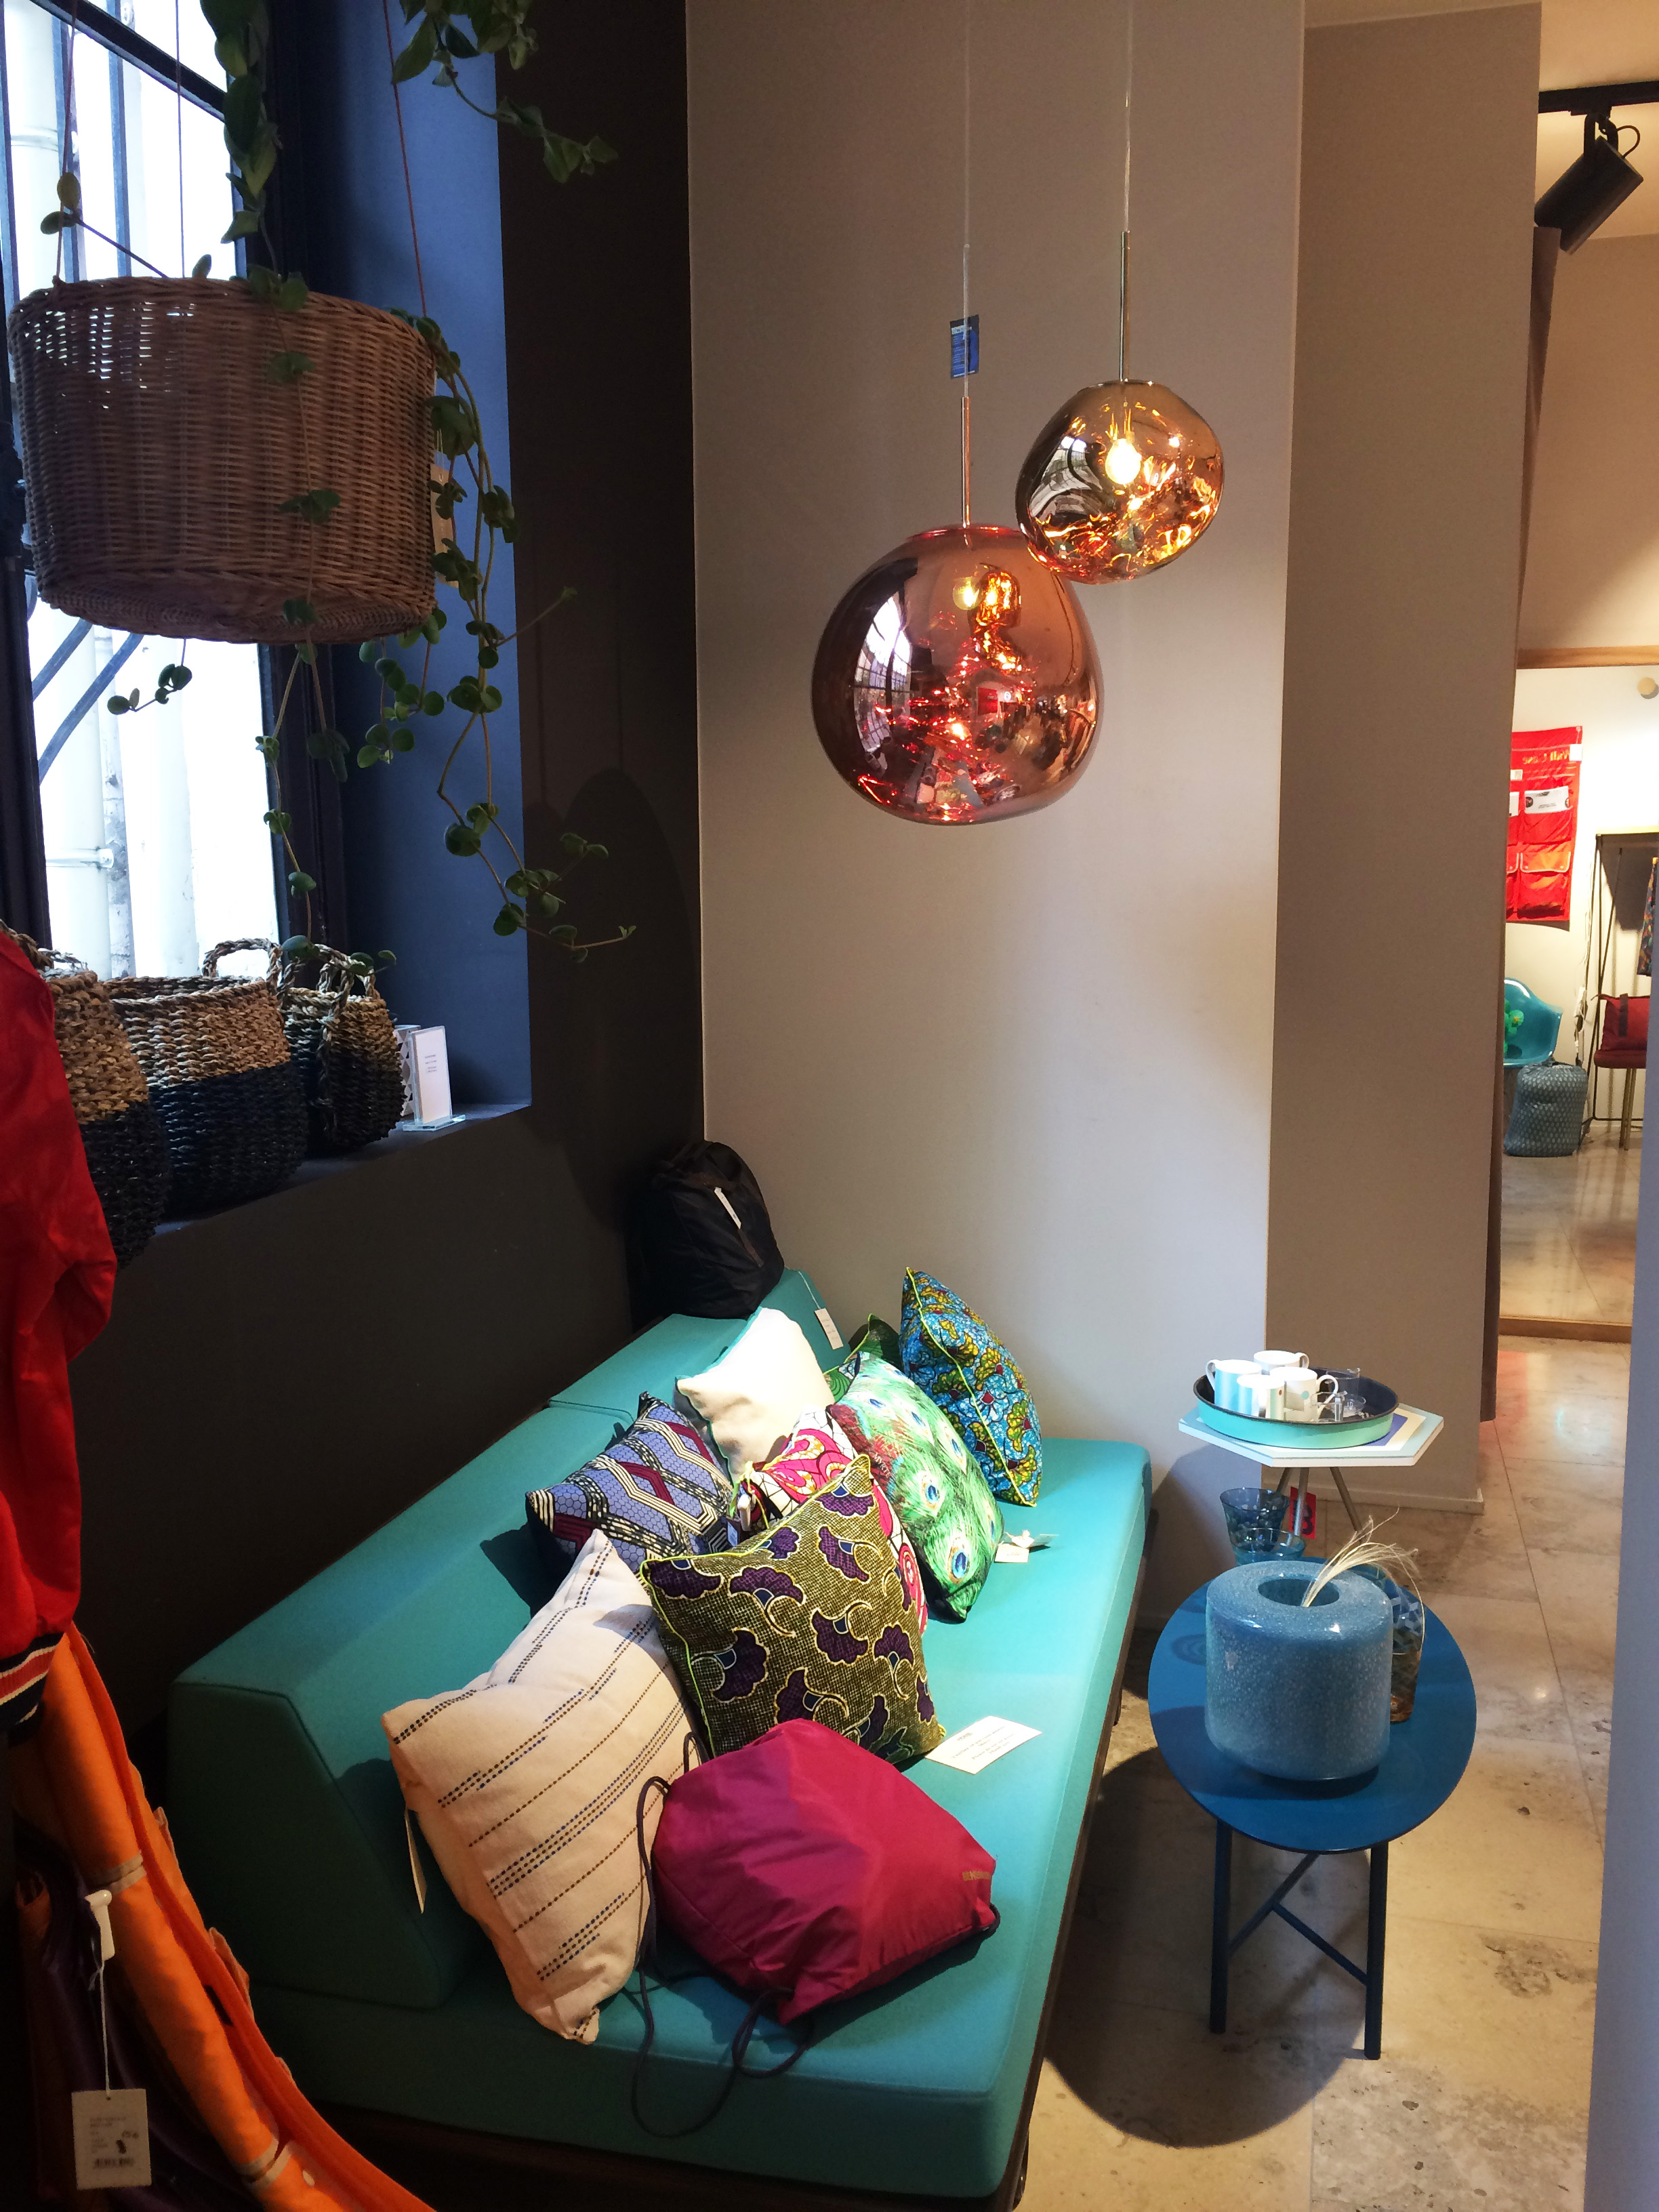 Bensimon Top Interior Stores In Paris Worth Visiting authentic interior